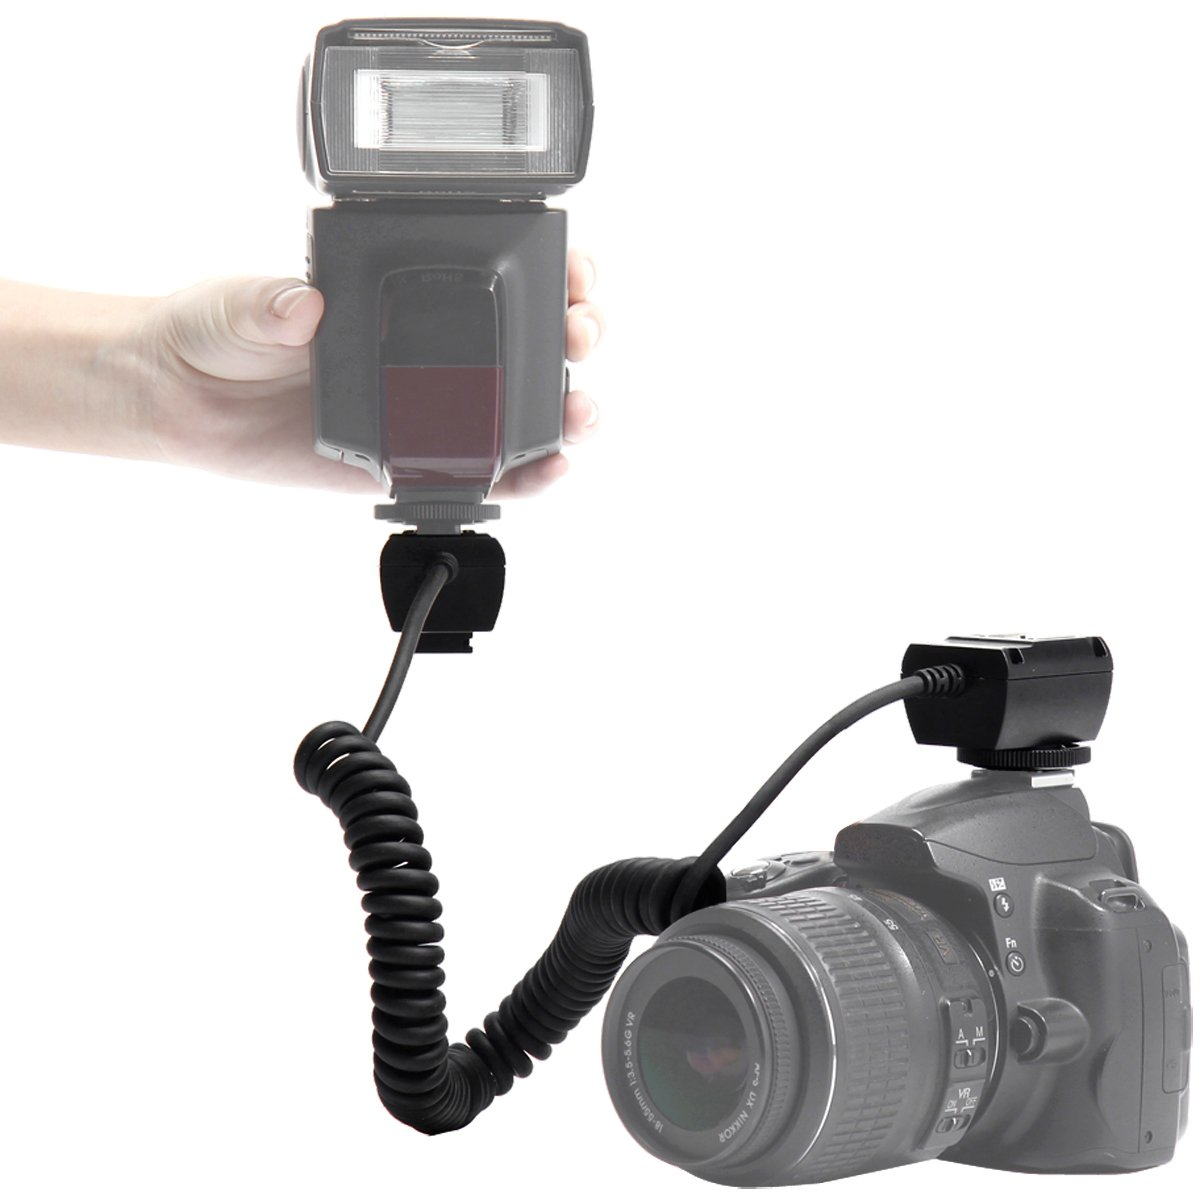 Canon Speedlite 470EX-AI Flash with Diffuser, Batteries & Charger Kit, Xpix Cleaning Accessories, and Basic Photo Bundle by Canon (Image #8)